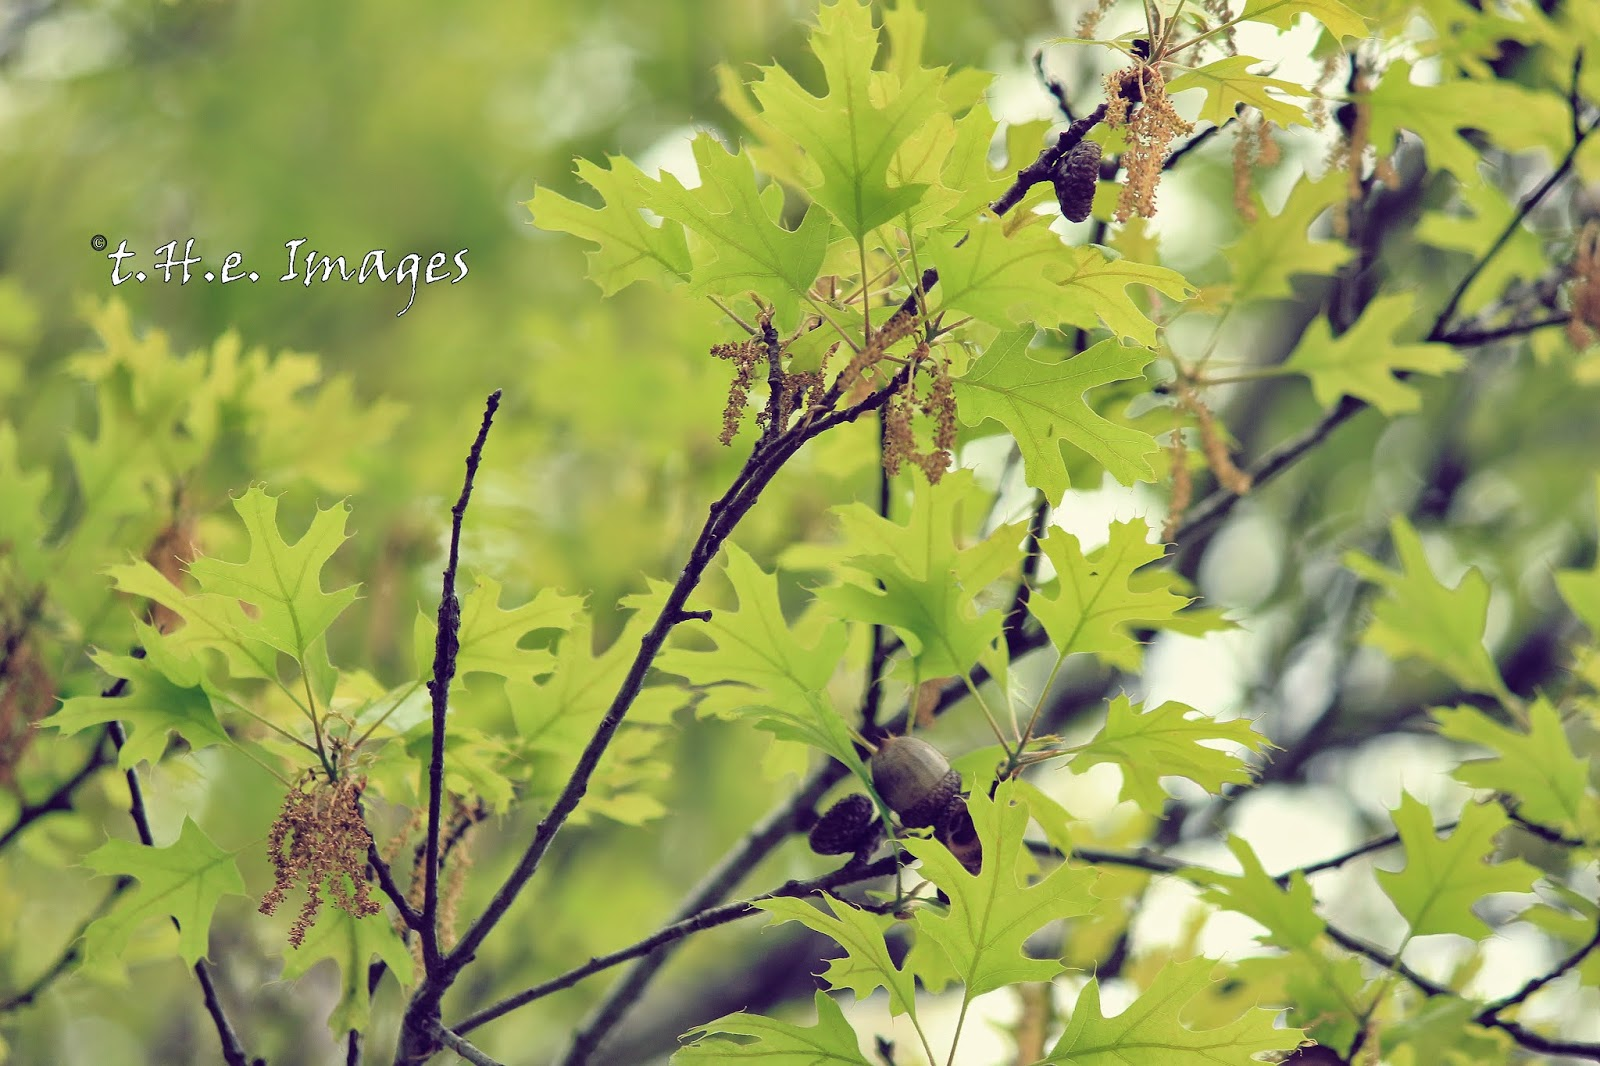 oak leaves in spring